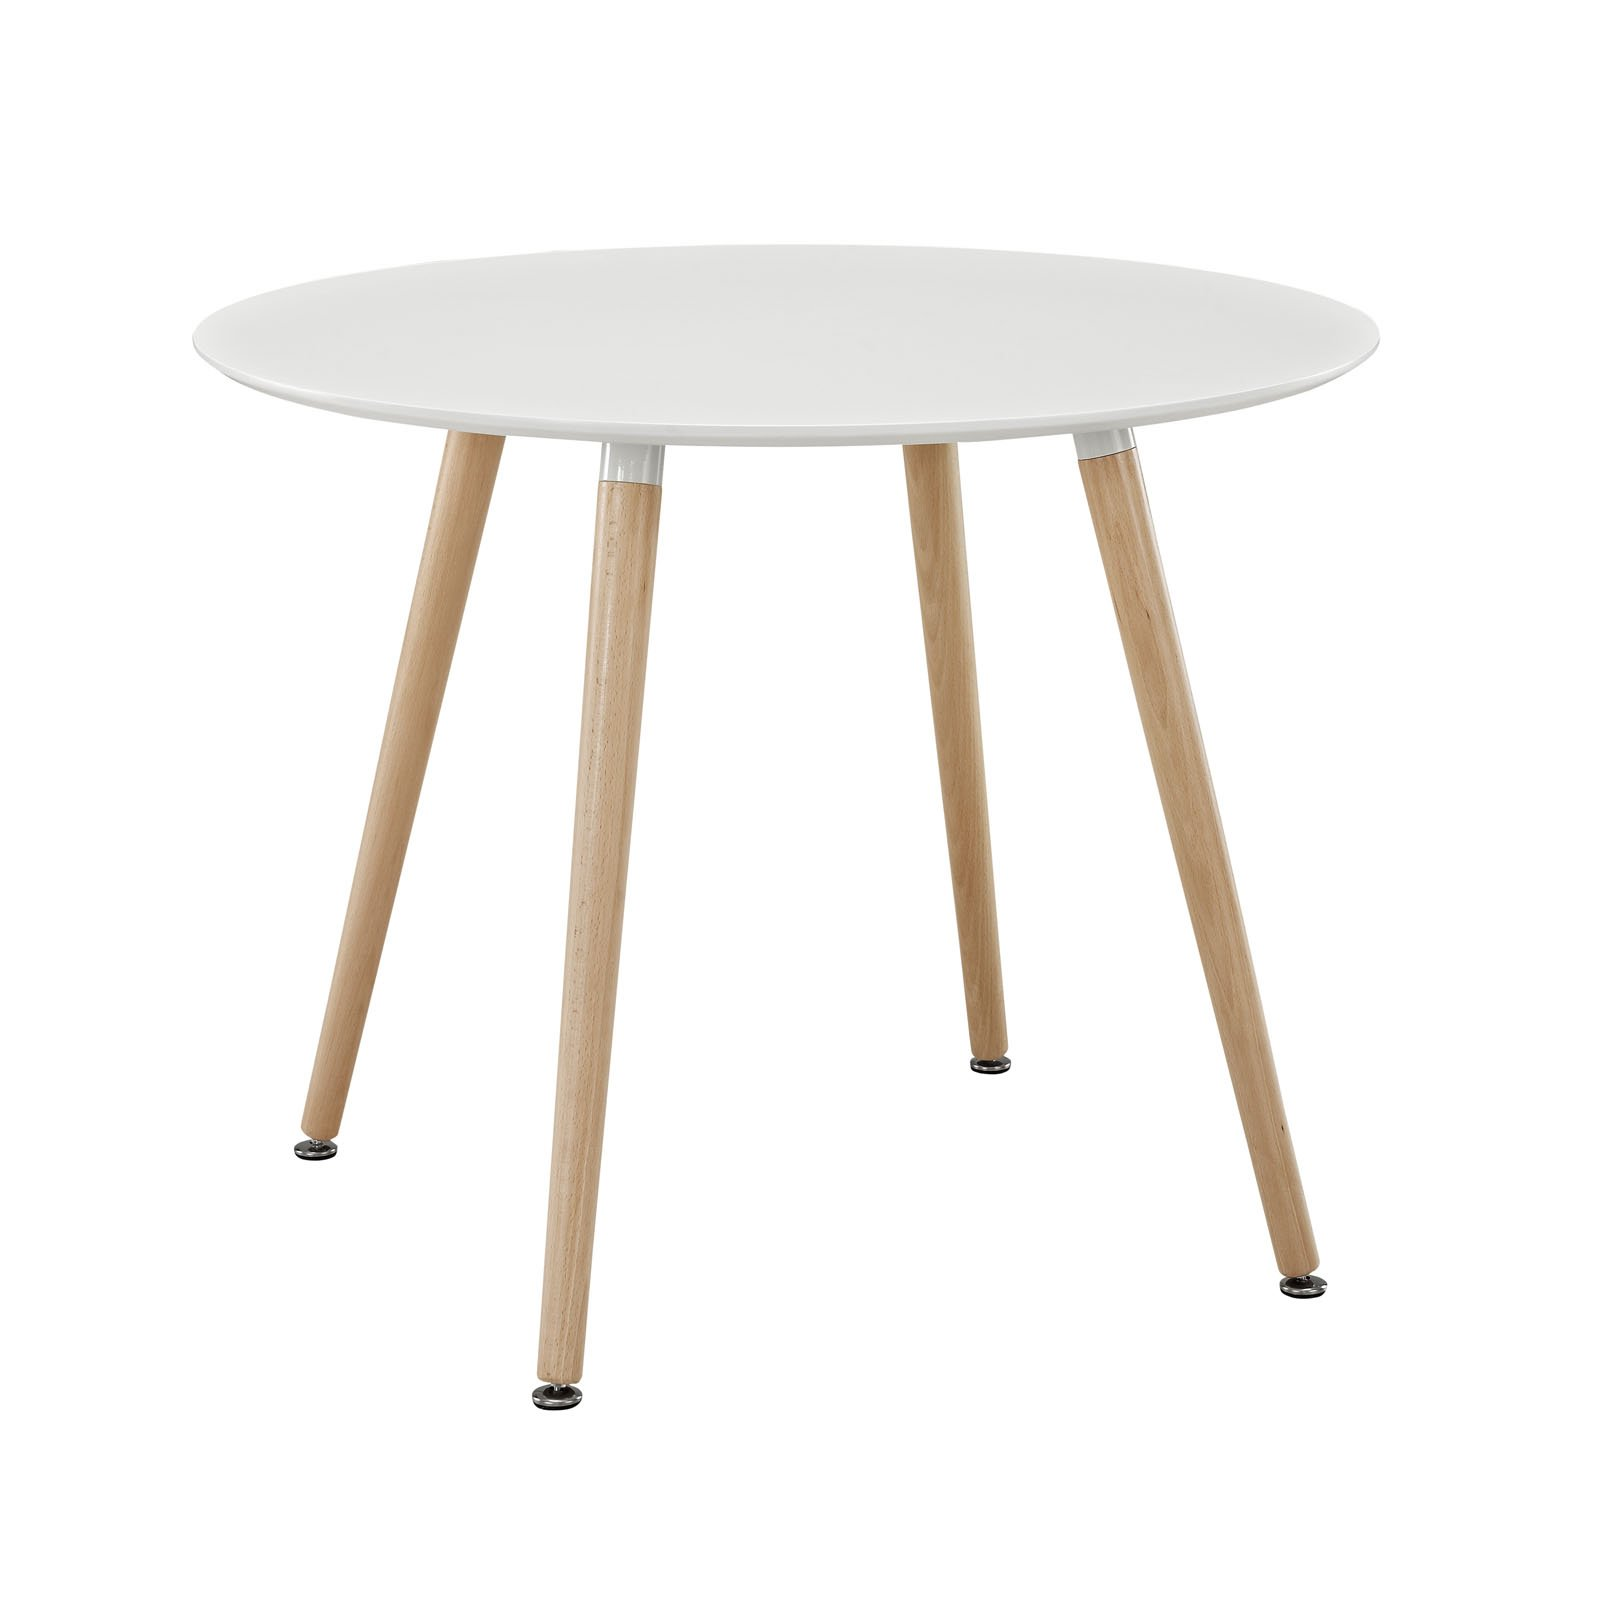 Modway Track Circular Dining Table in White by Modway (Image #1)